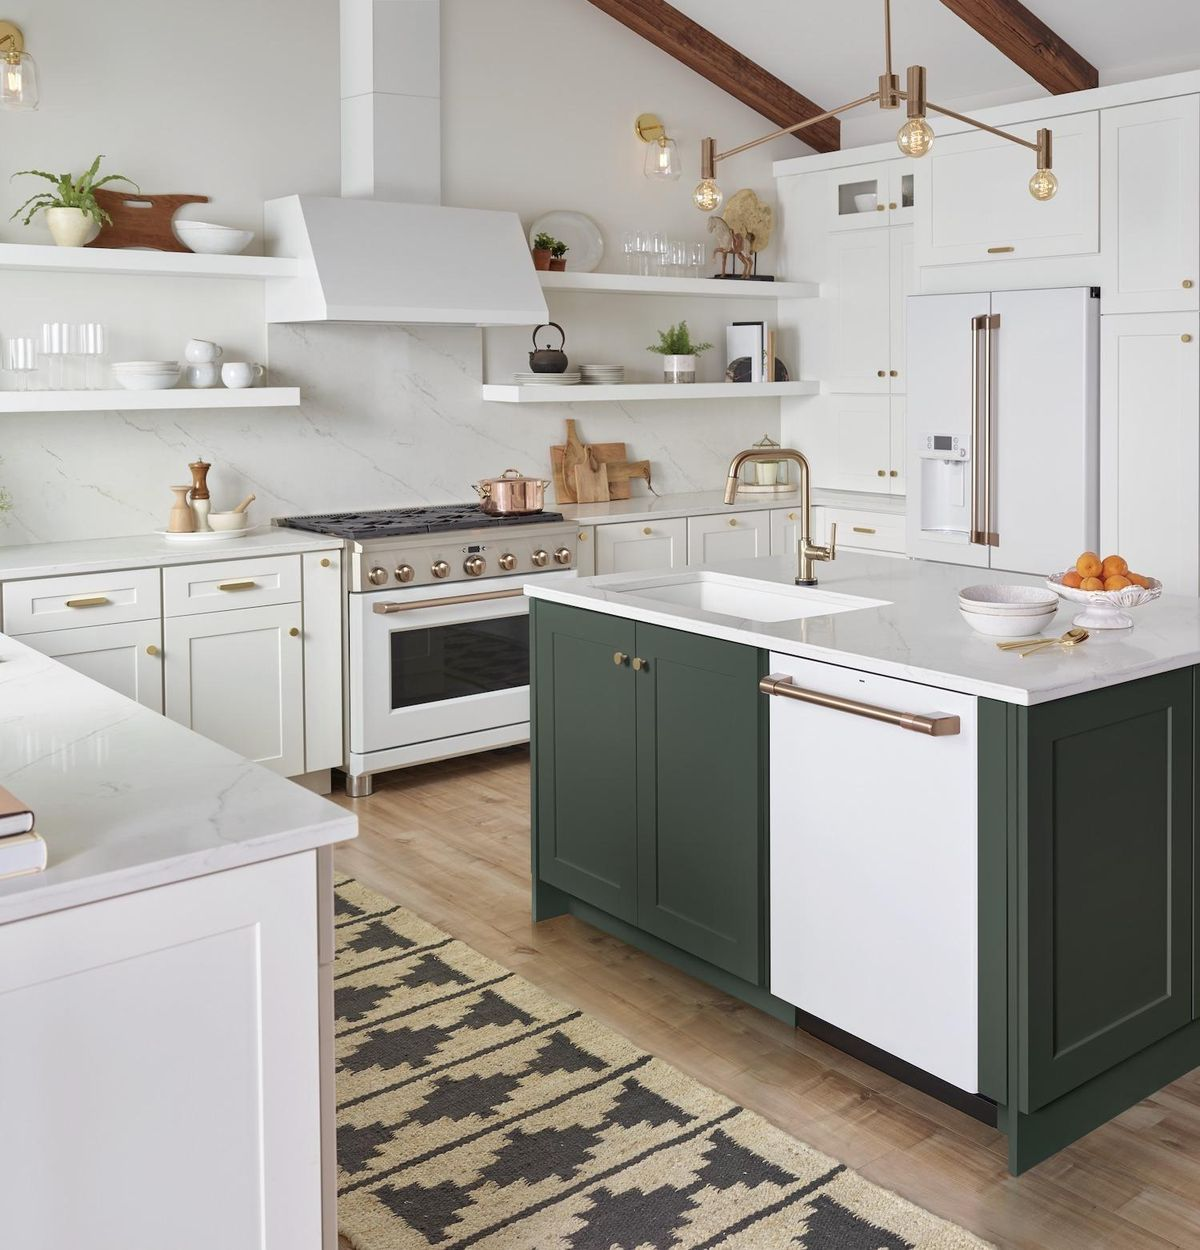 How To Make A White Kitchen Even More Beautiful In 2020 Affordable Kitchen Cabinets Kitchen Design White Kitchen Design